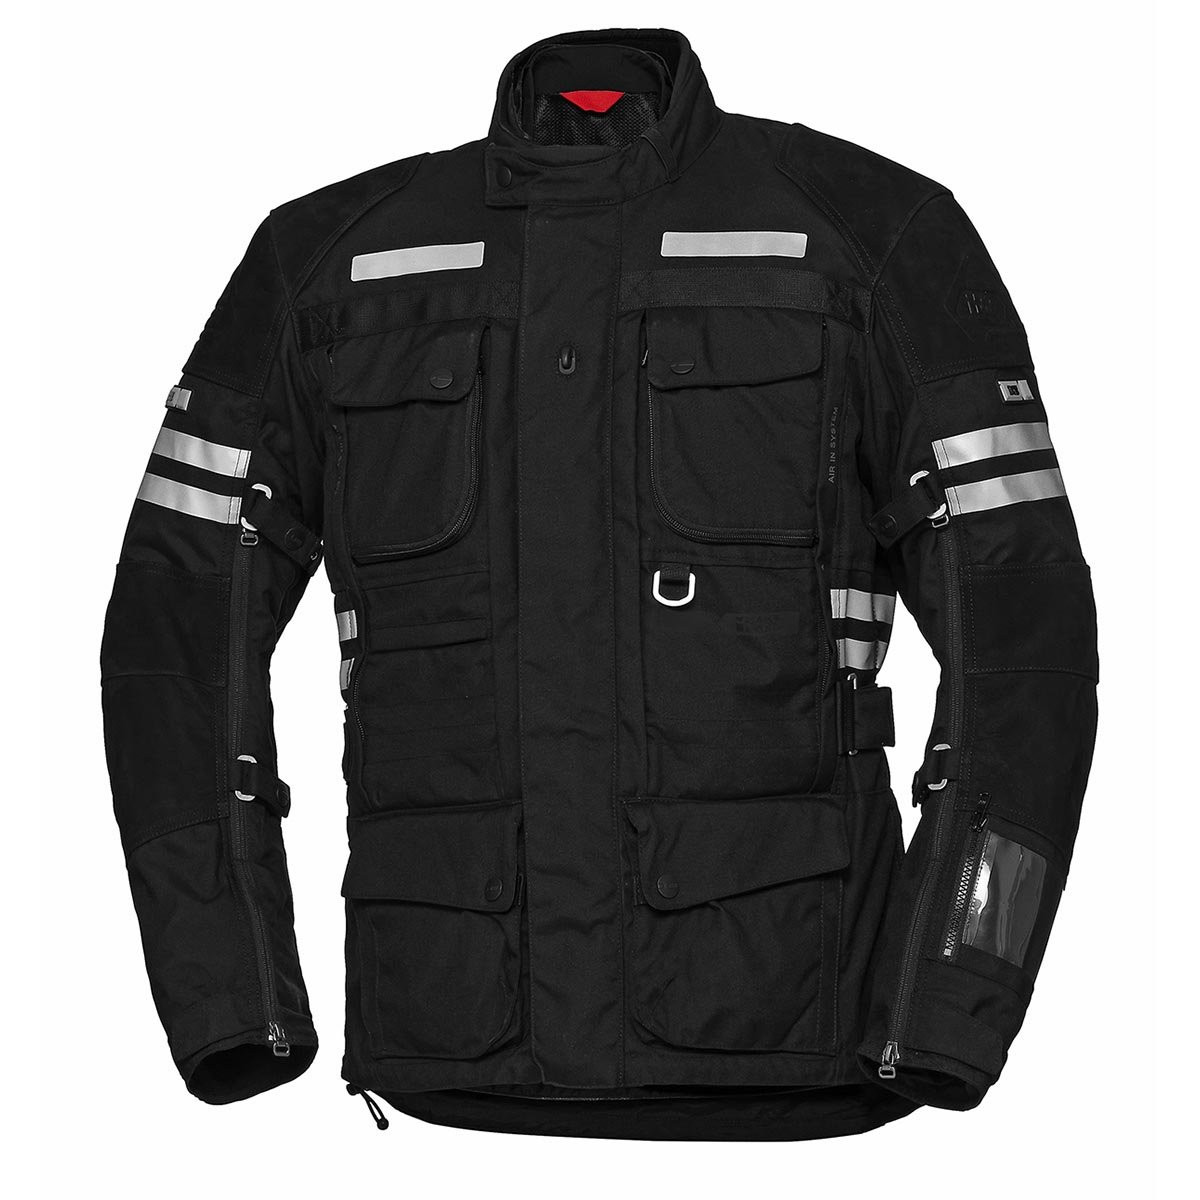 LT MONTEVIDEO-ST JACKET